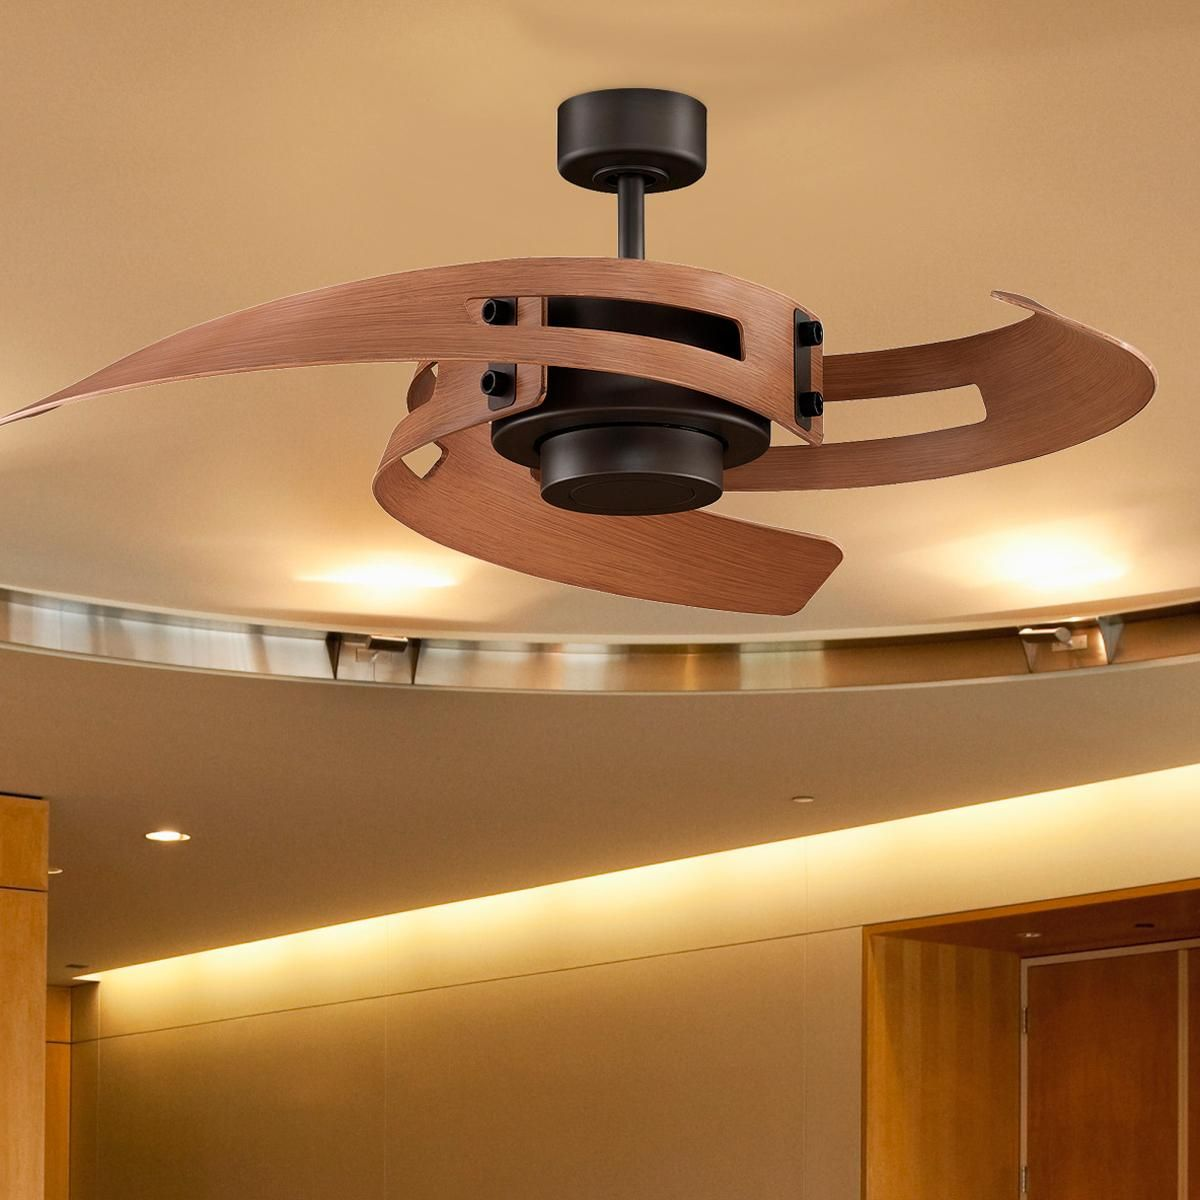 Curved Blades Ceiling Fan Ceiling Fan Ceiling Fan With Light